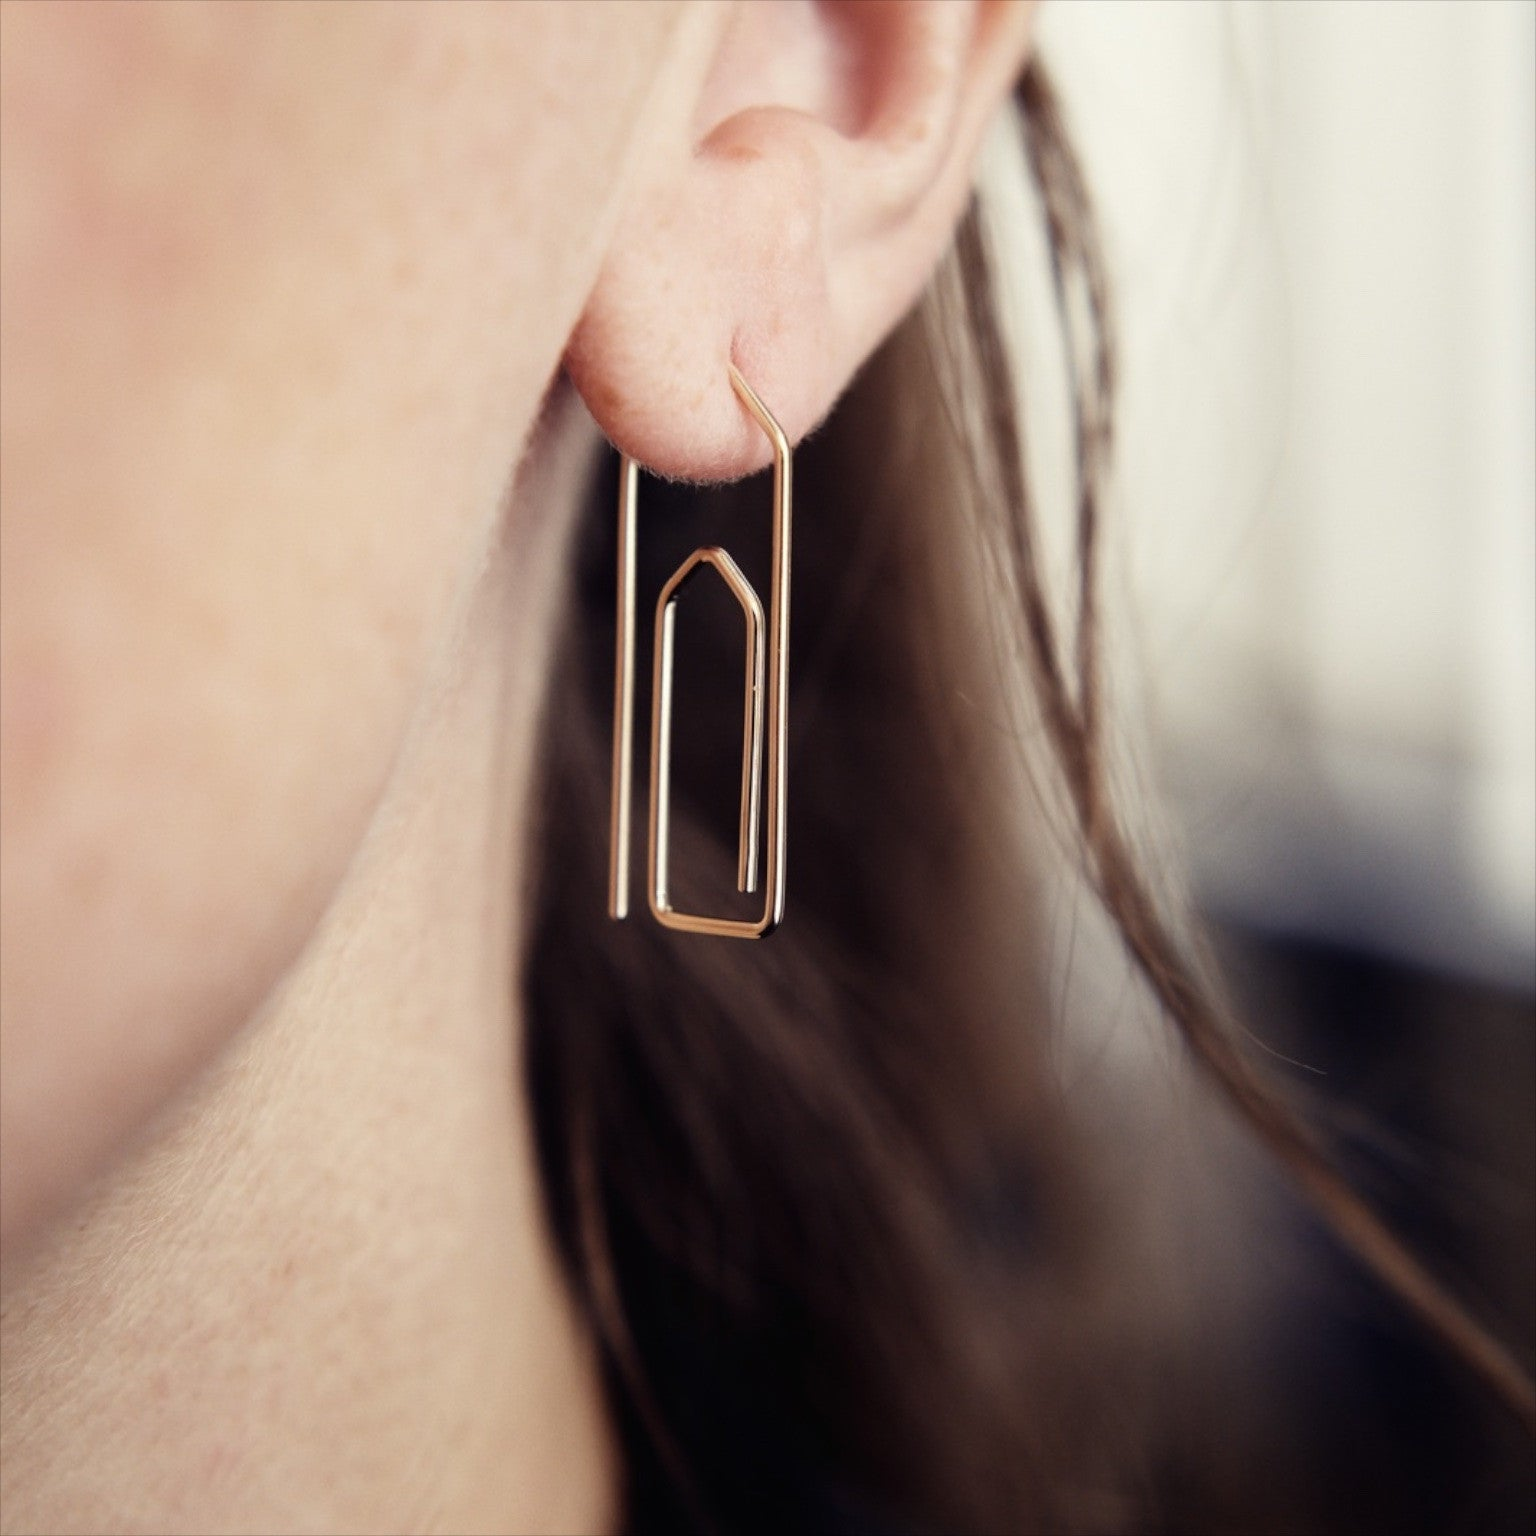 'Paperclip' Fairtrade Gold Earring